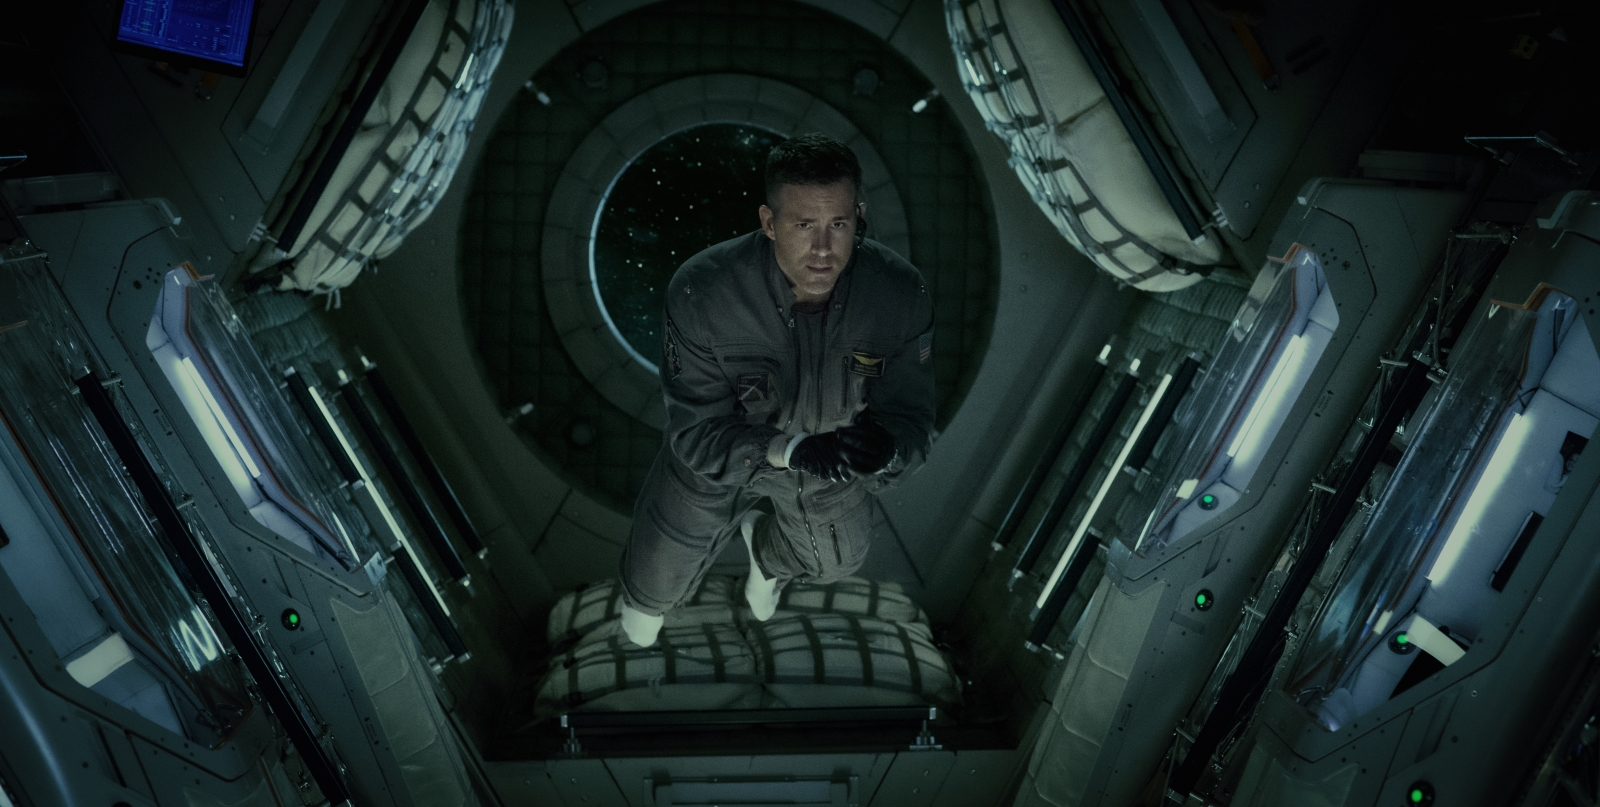 'Life' Review: This Space Horror Gives Generic Chills & Thrills